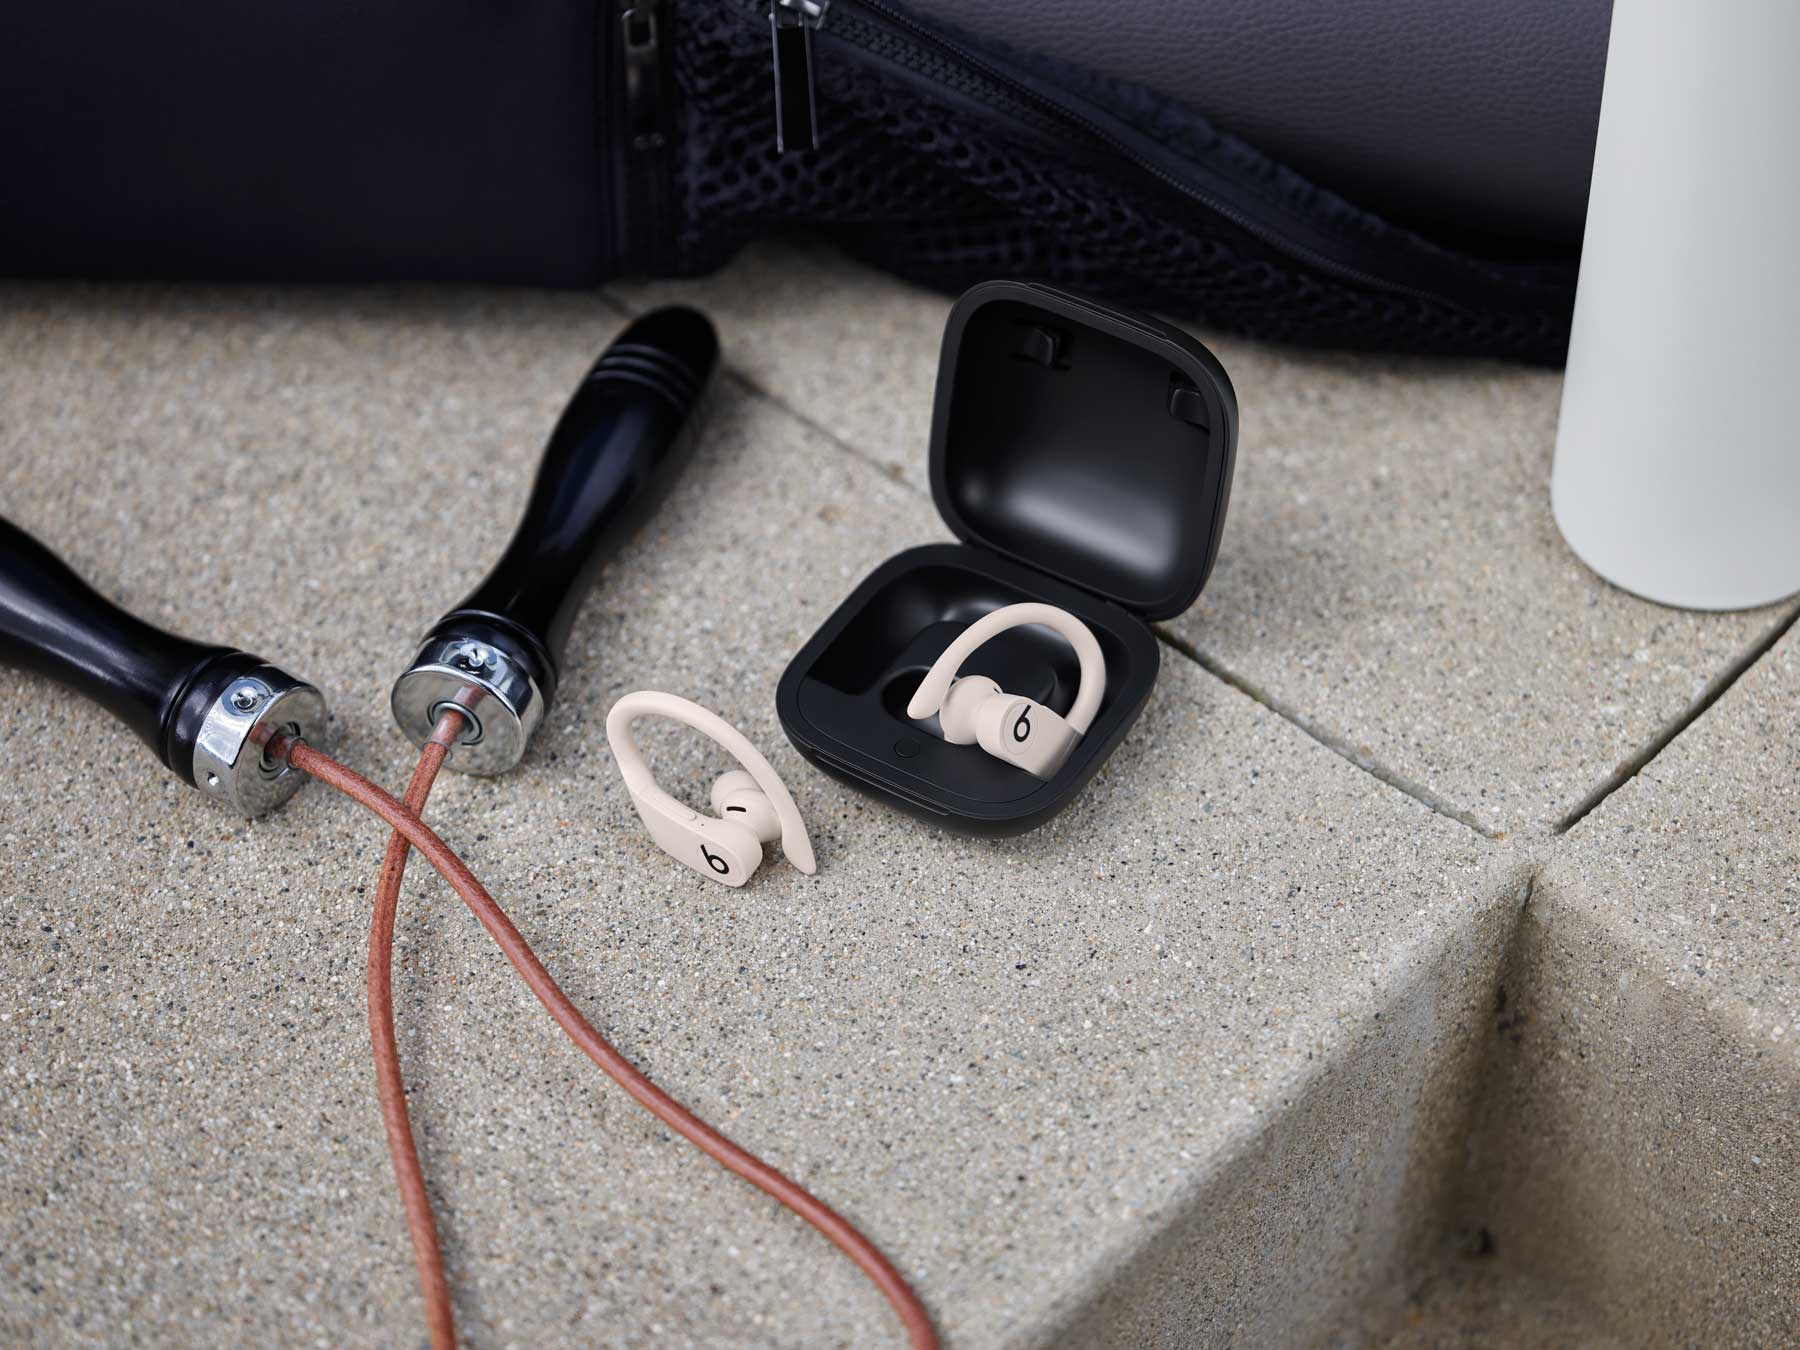 c575c8e038cb74 Powerbeats Pro In Black Available Soon, Colours Arriving Later - Mac Prices  Australia